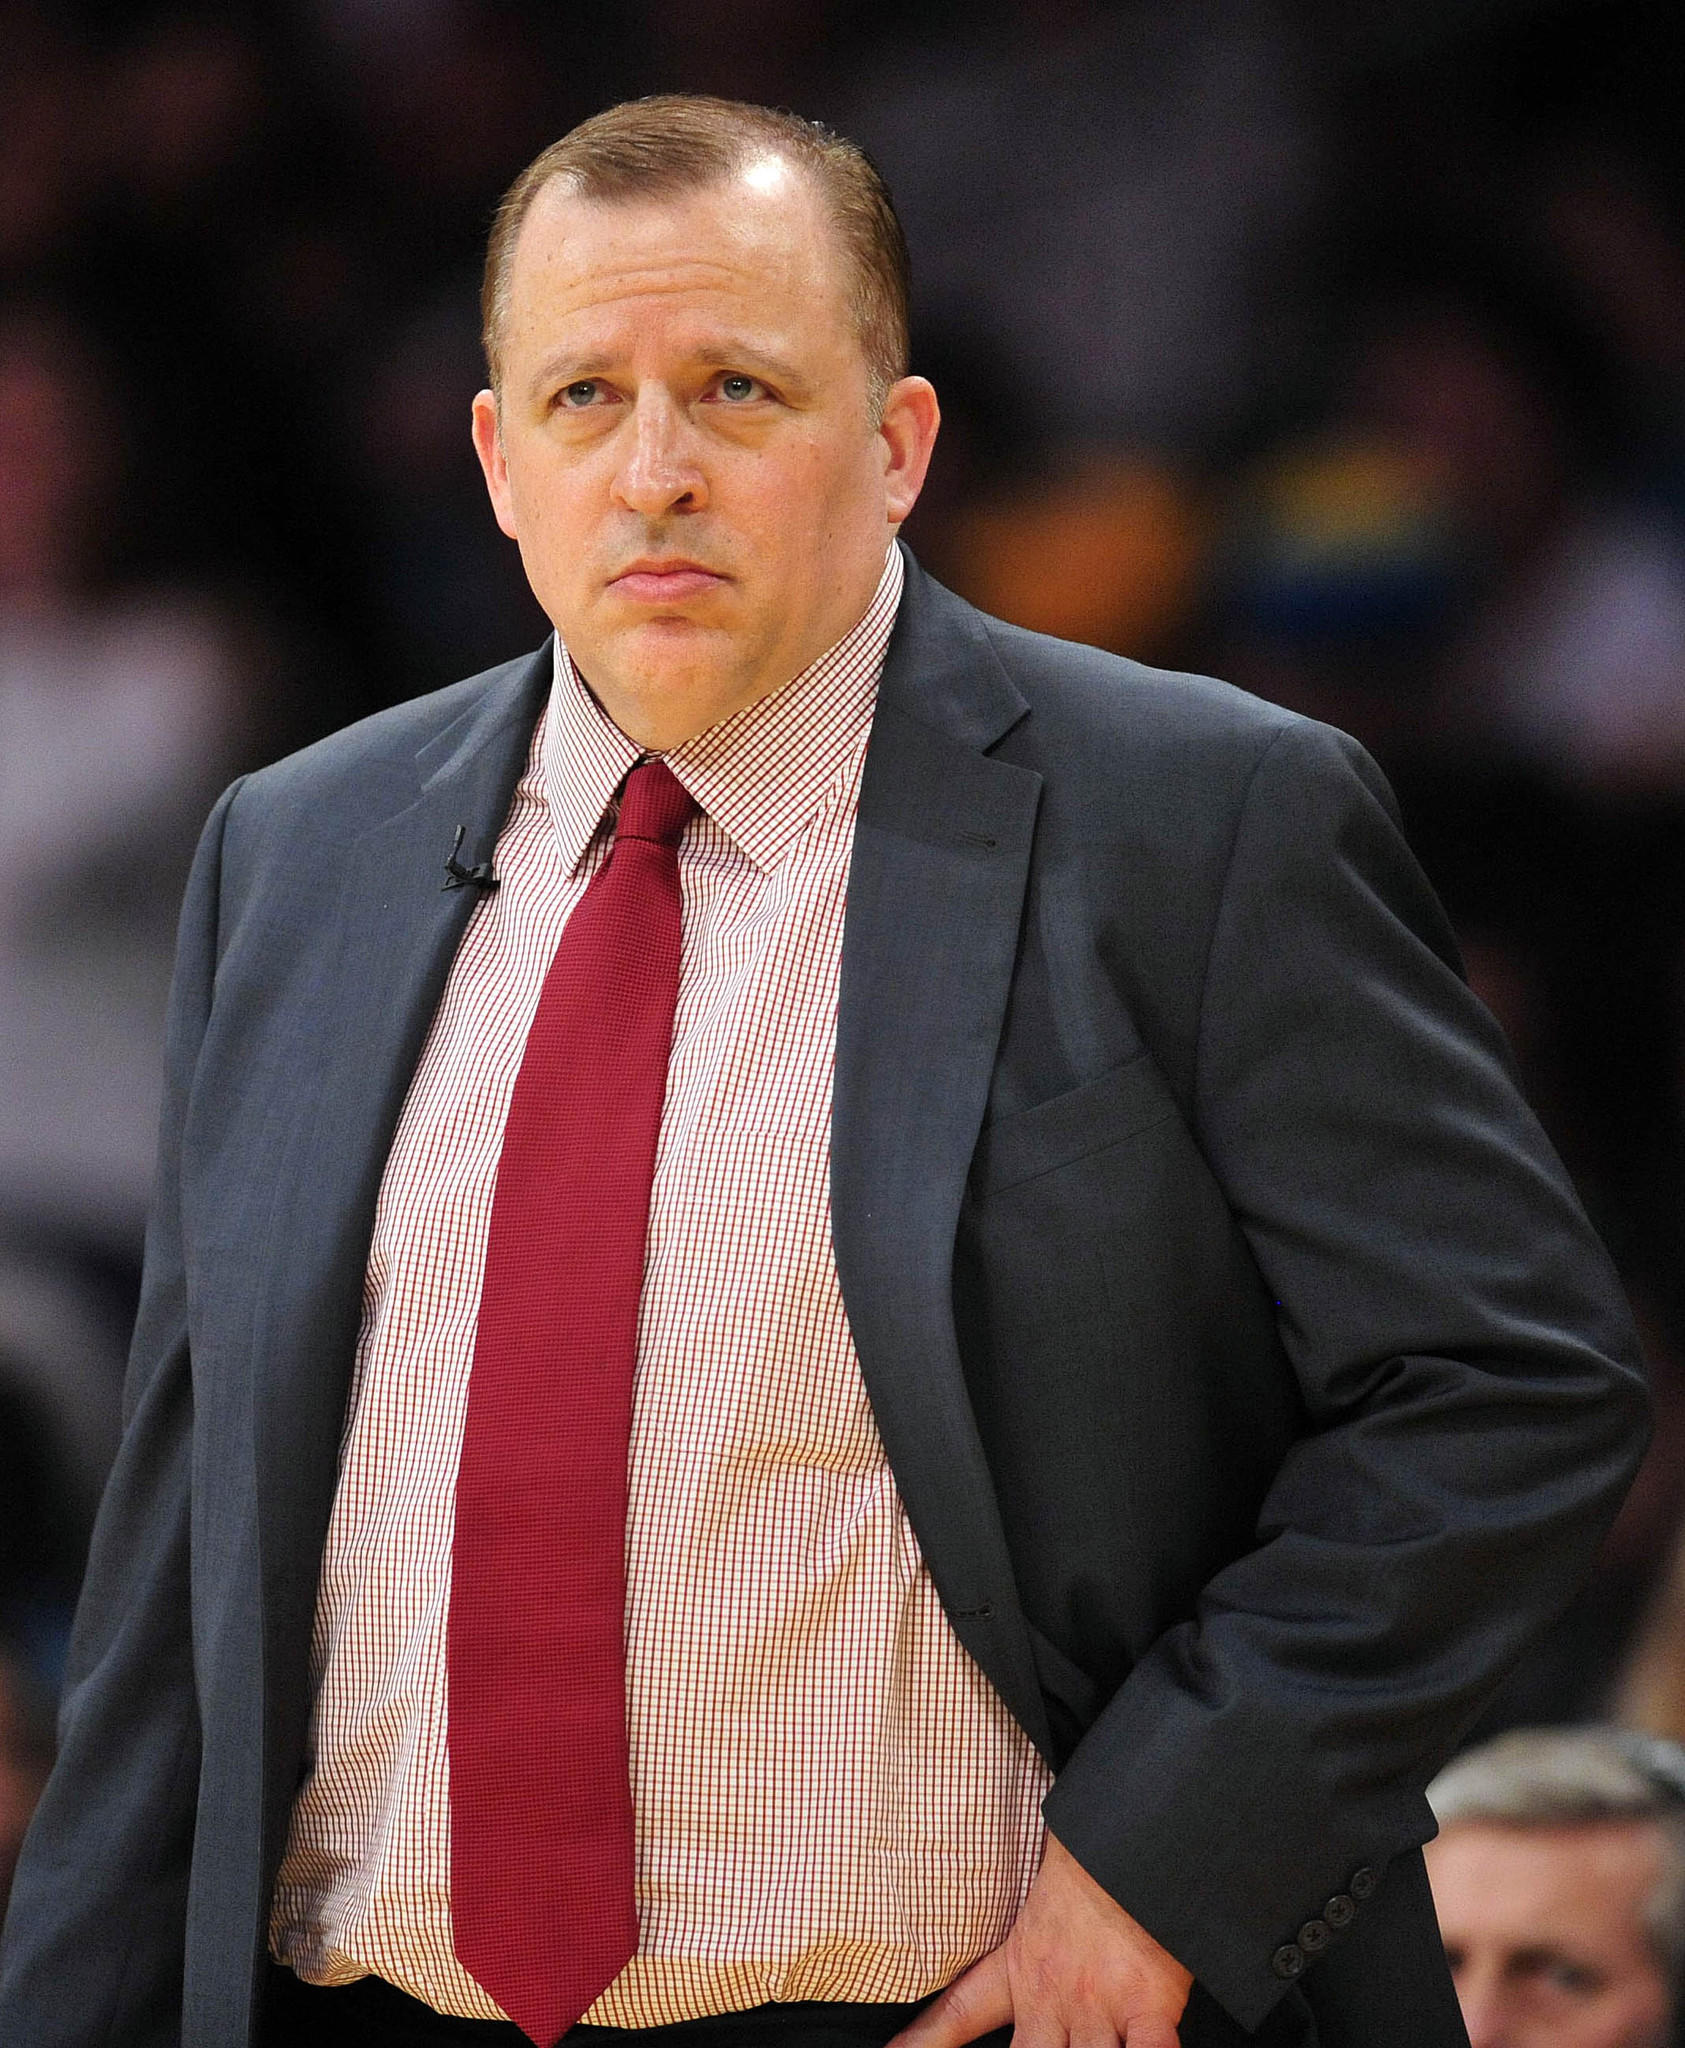 Chicago Bulls head coach Tom Thibodeau watches game action against the Los Angeles Lakers during the second half at Staples Center.